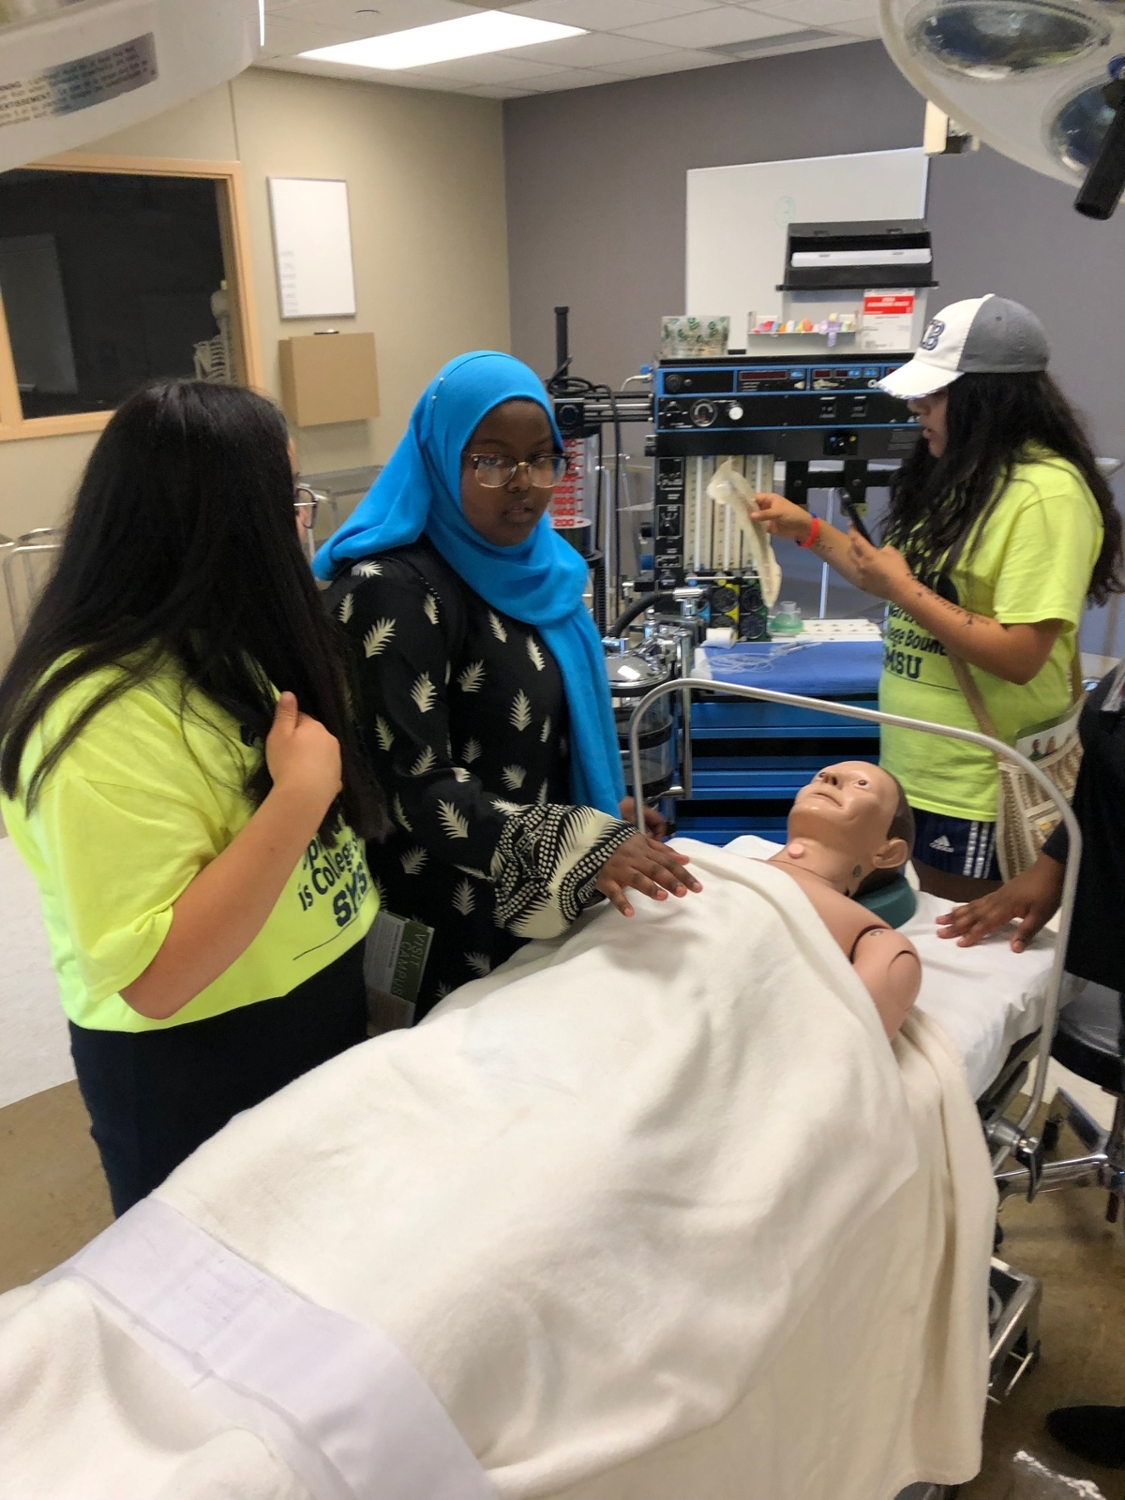 St. Cloud Tech College Visit with Health Care Focus